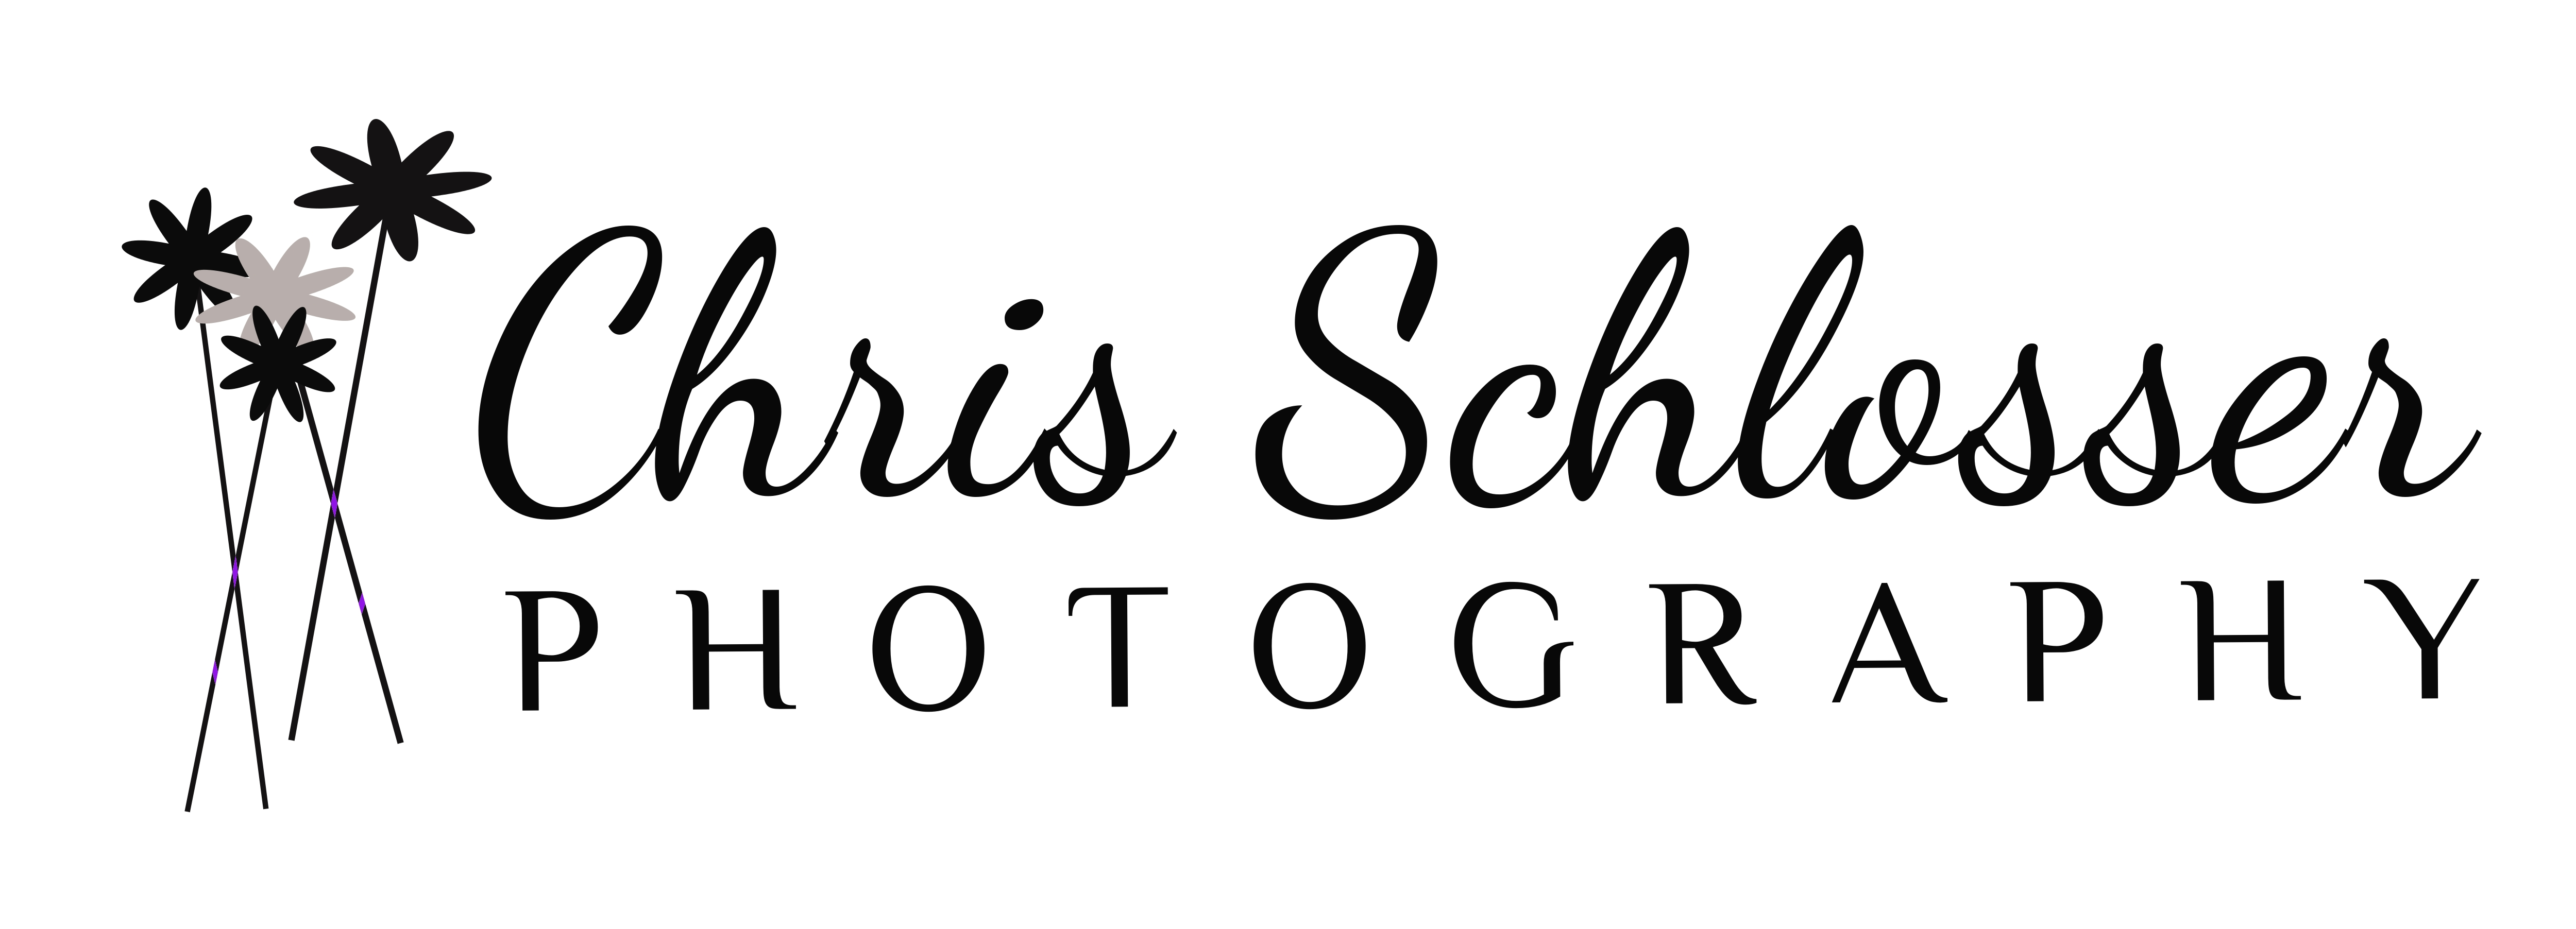 Chris Schlosser Photography